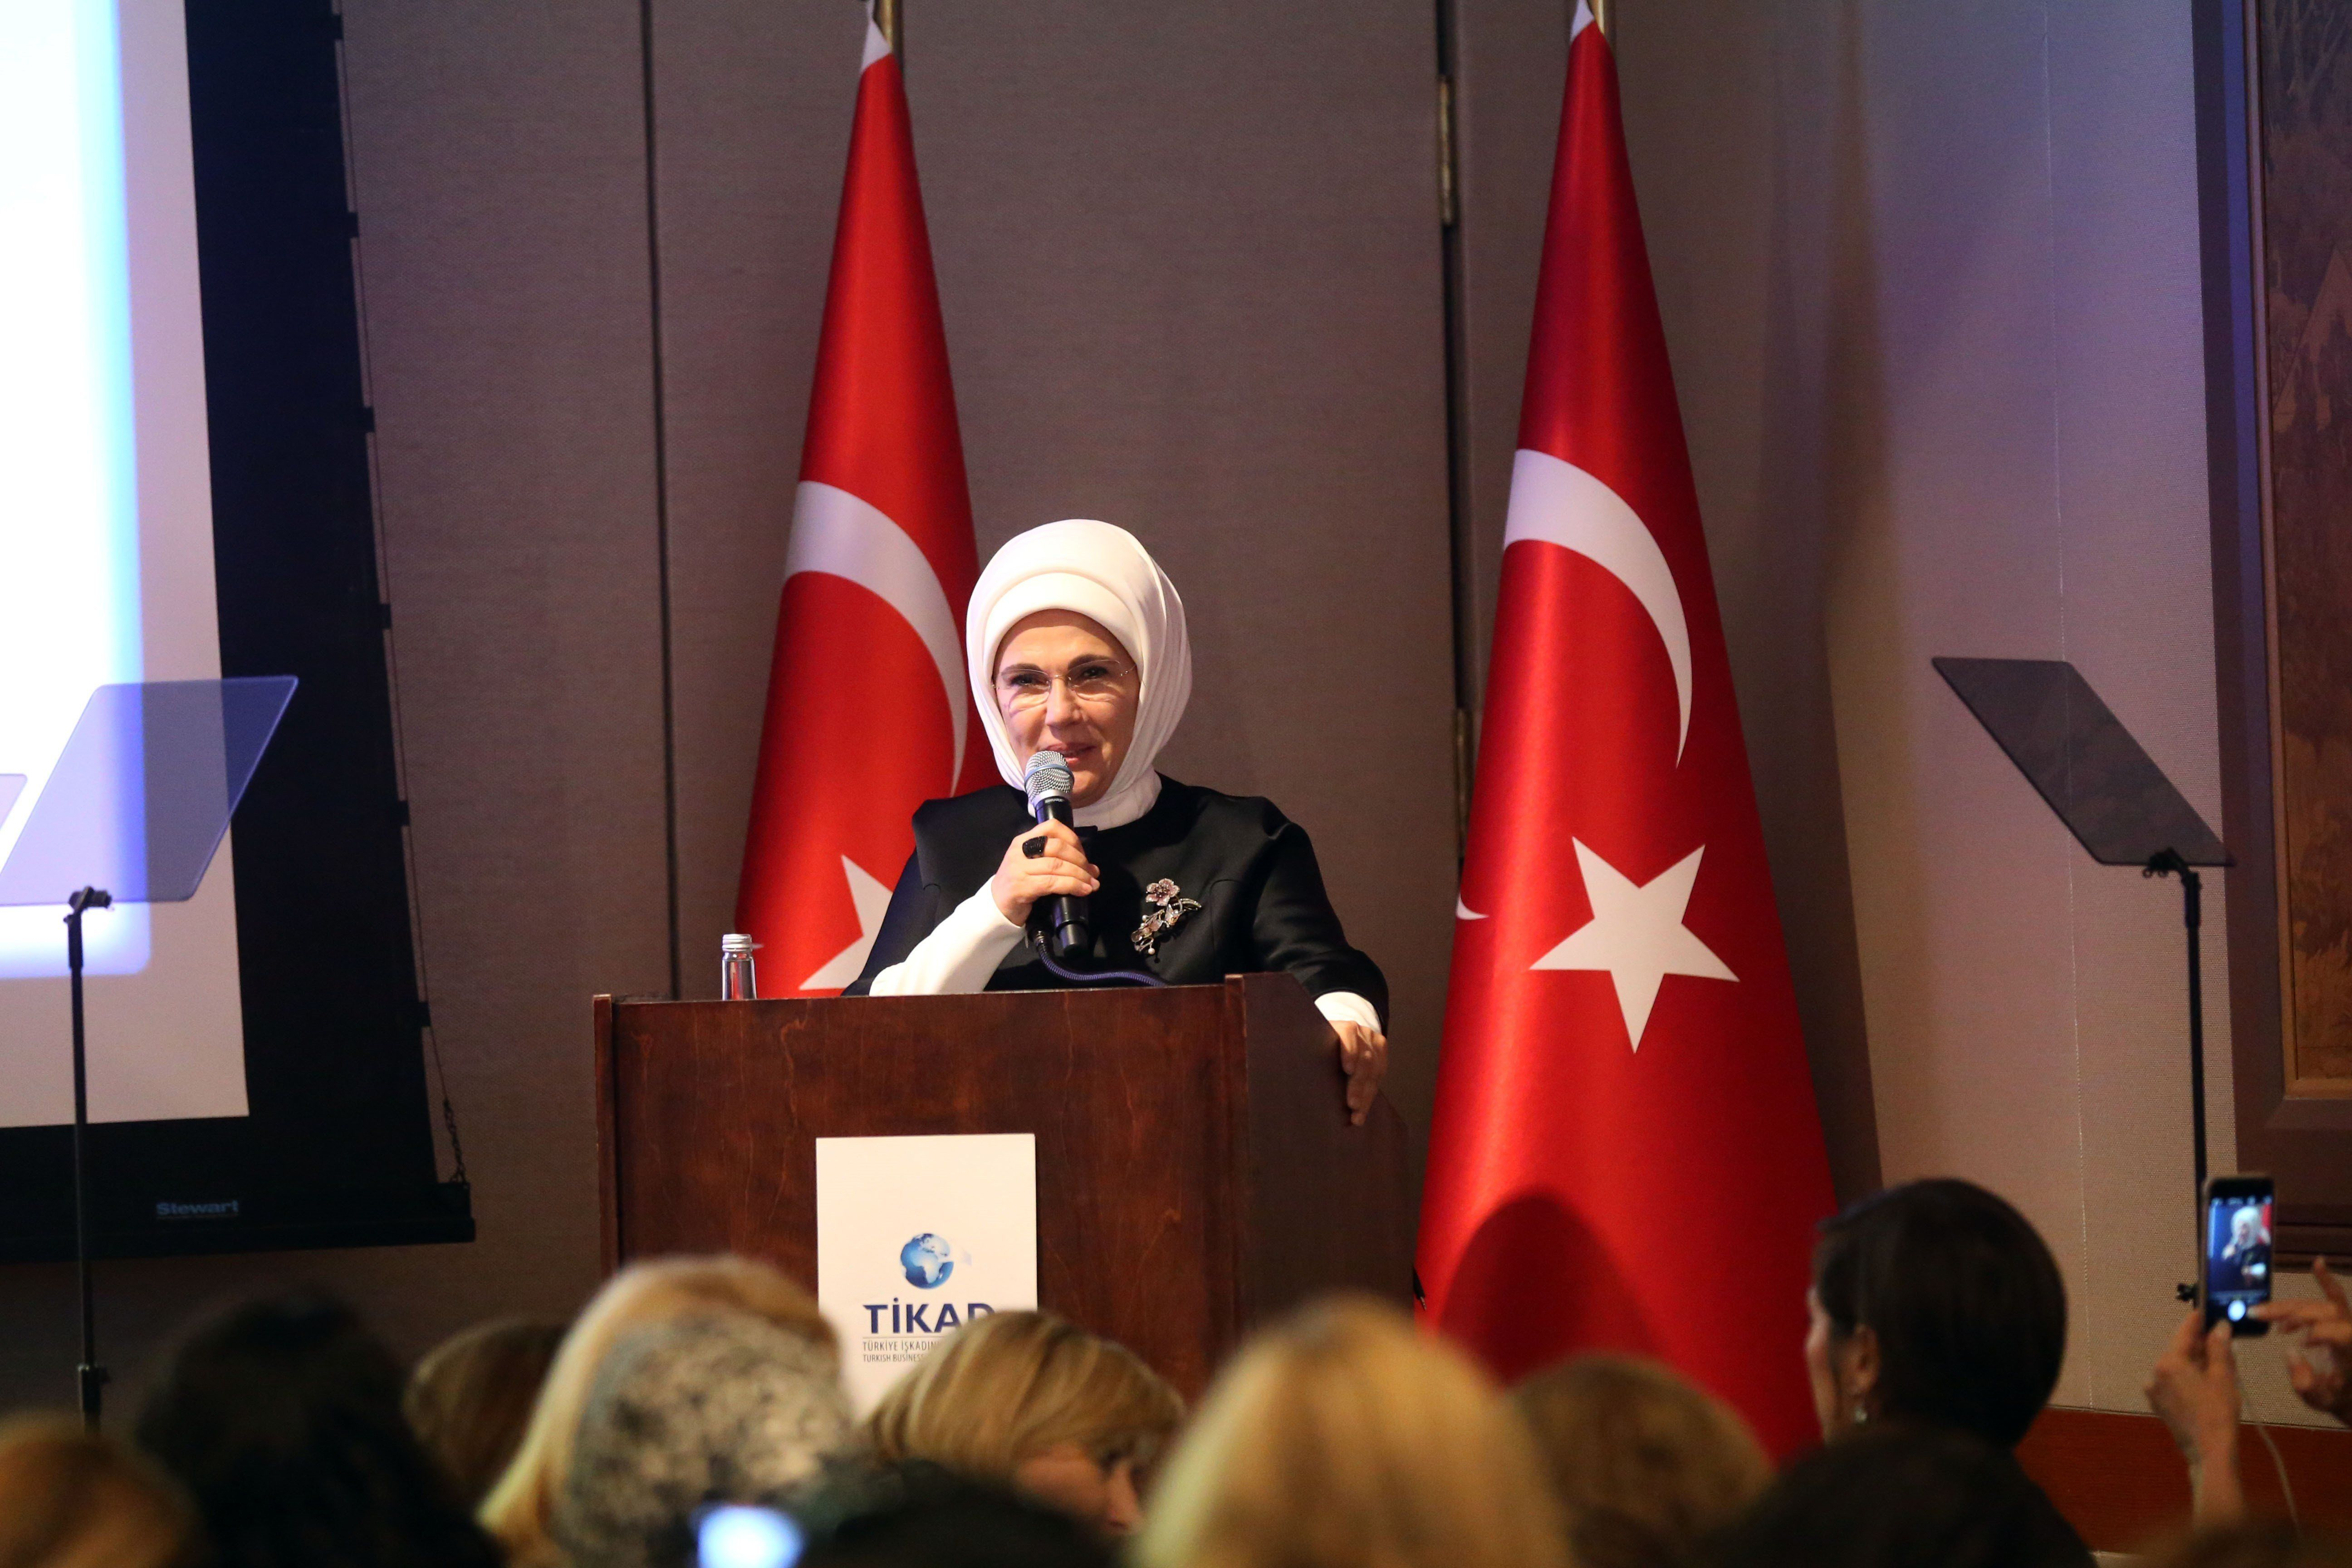 First Lady of Turkey Emine Erdogan speaks at the Harvard Club in New York, on Thursday.